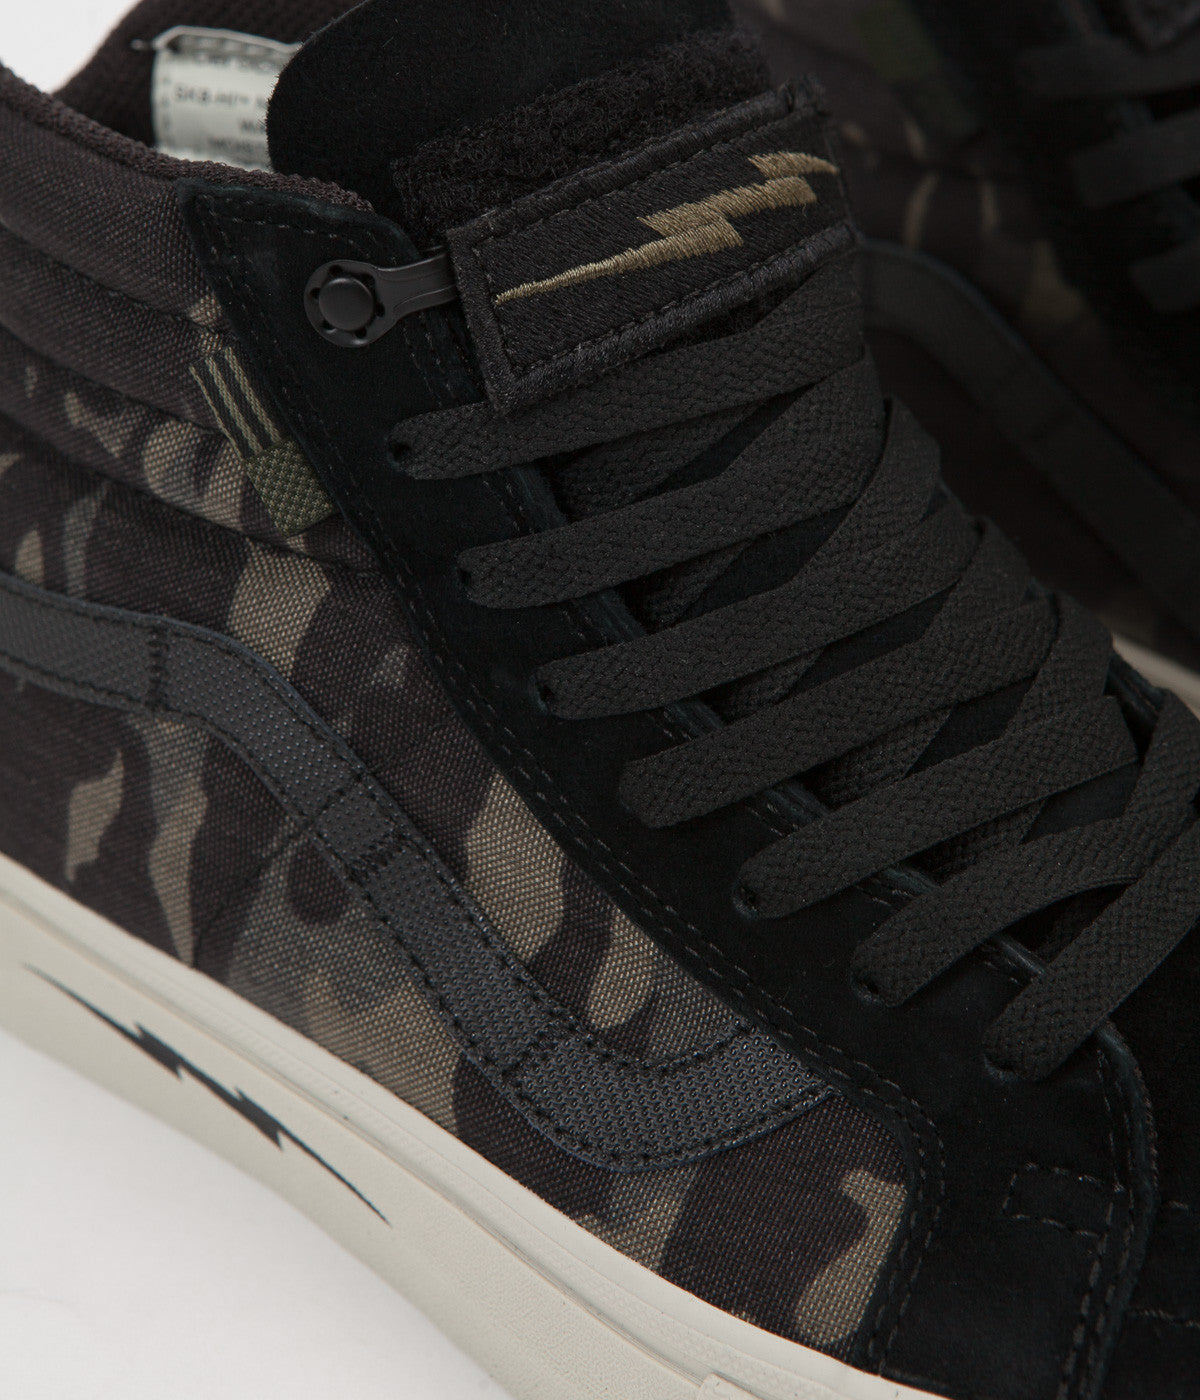 Vans Sk8 Hi Notchback Pro Shoes